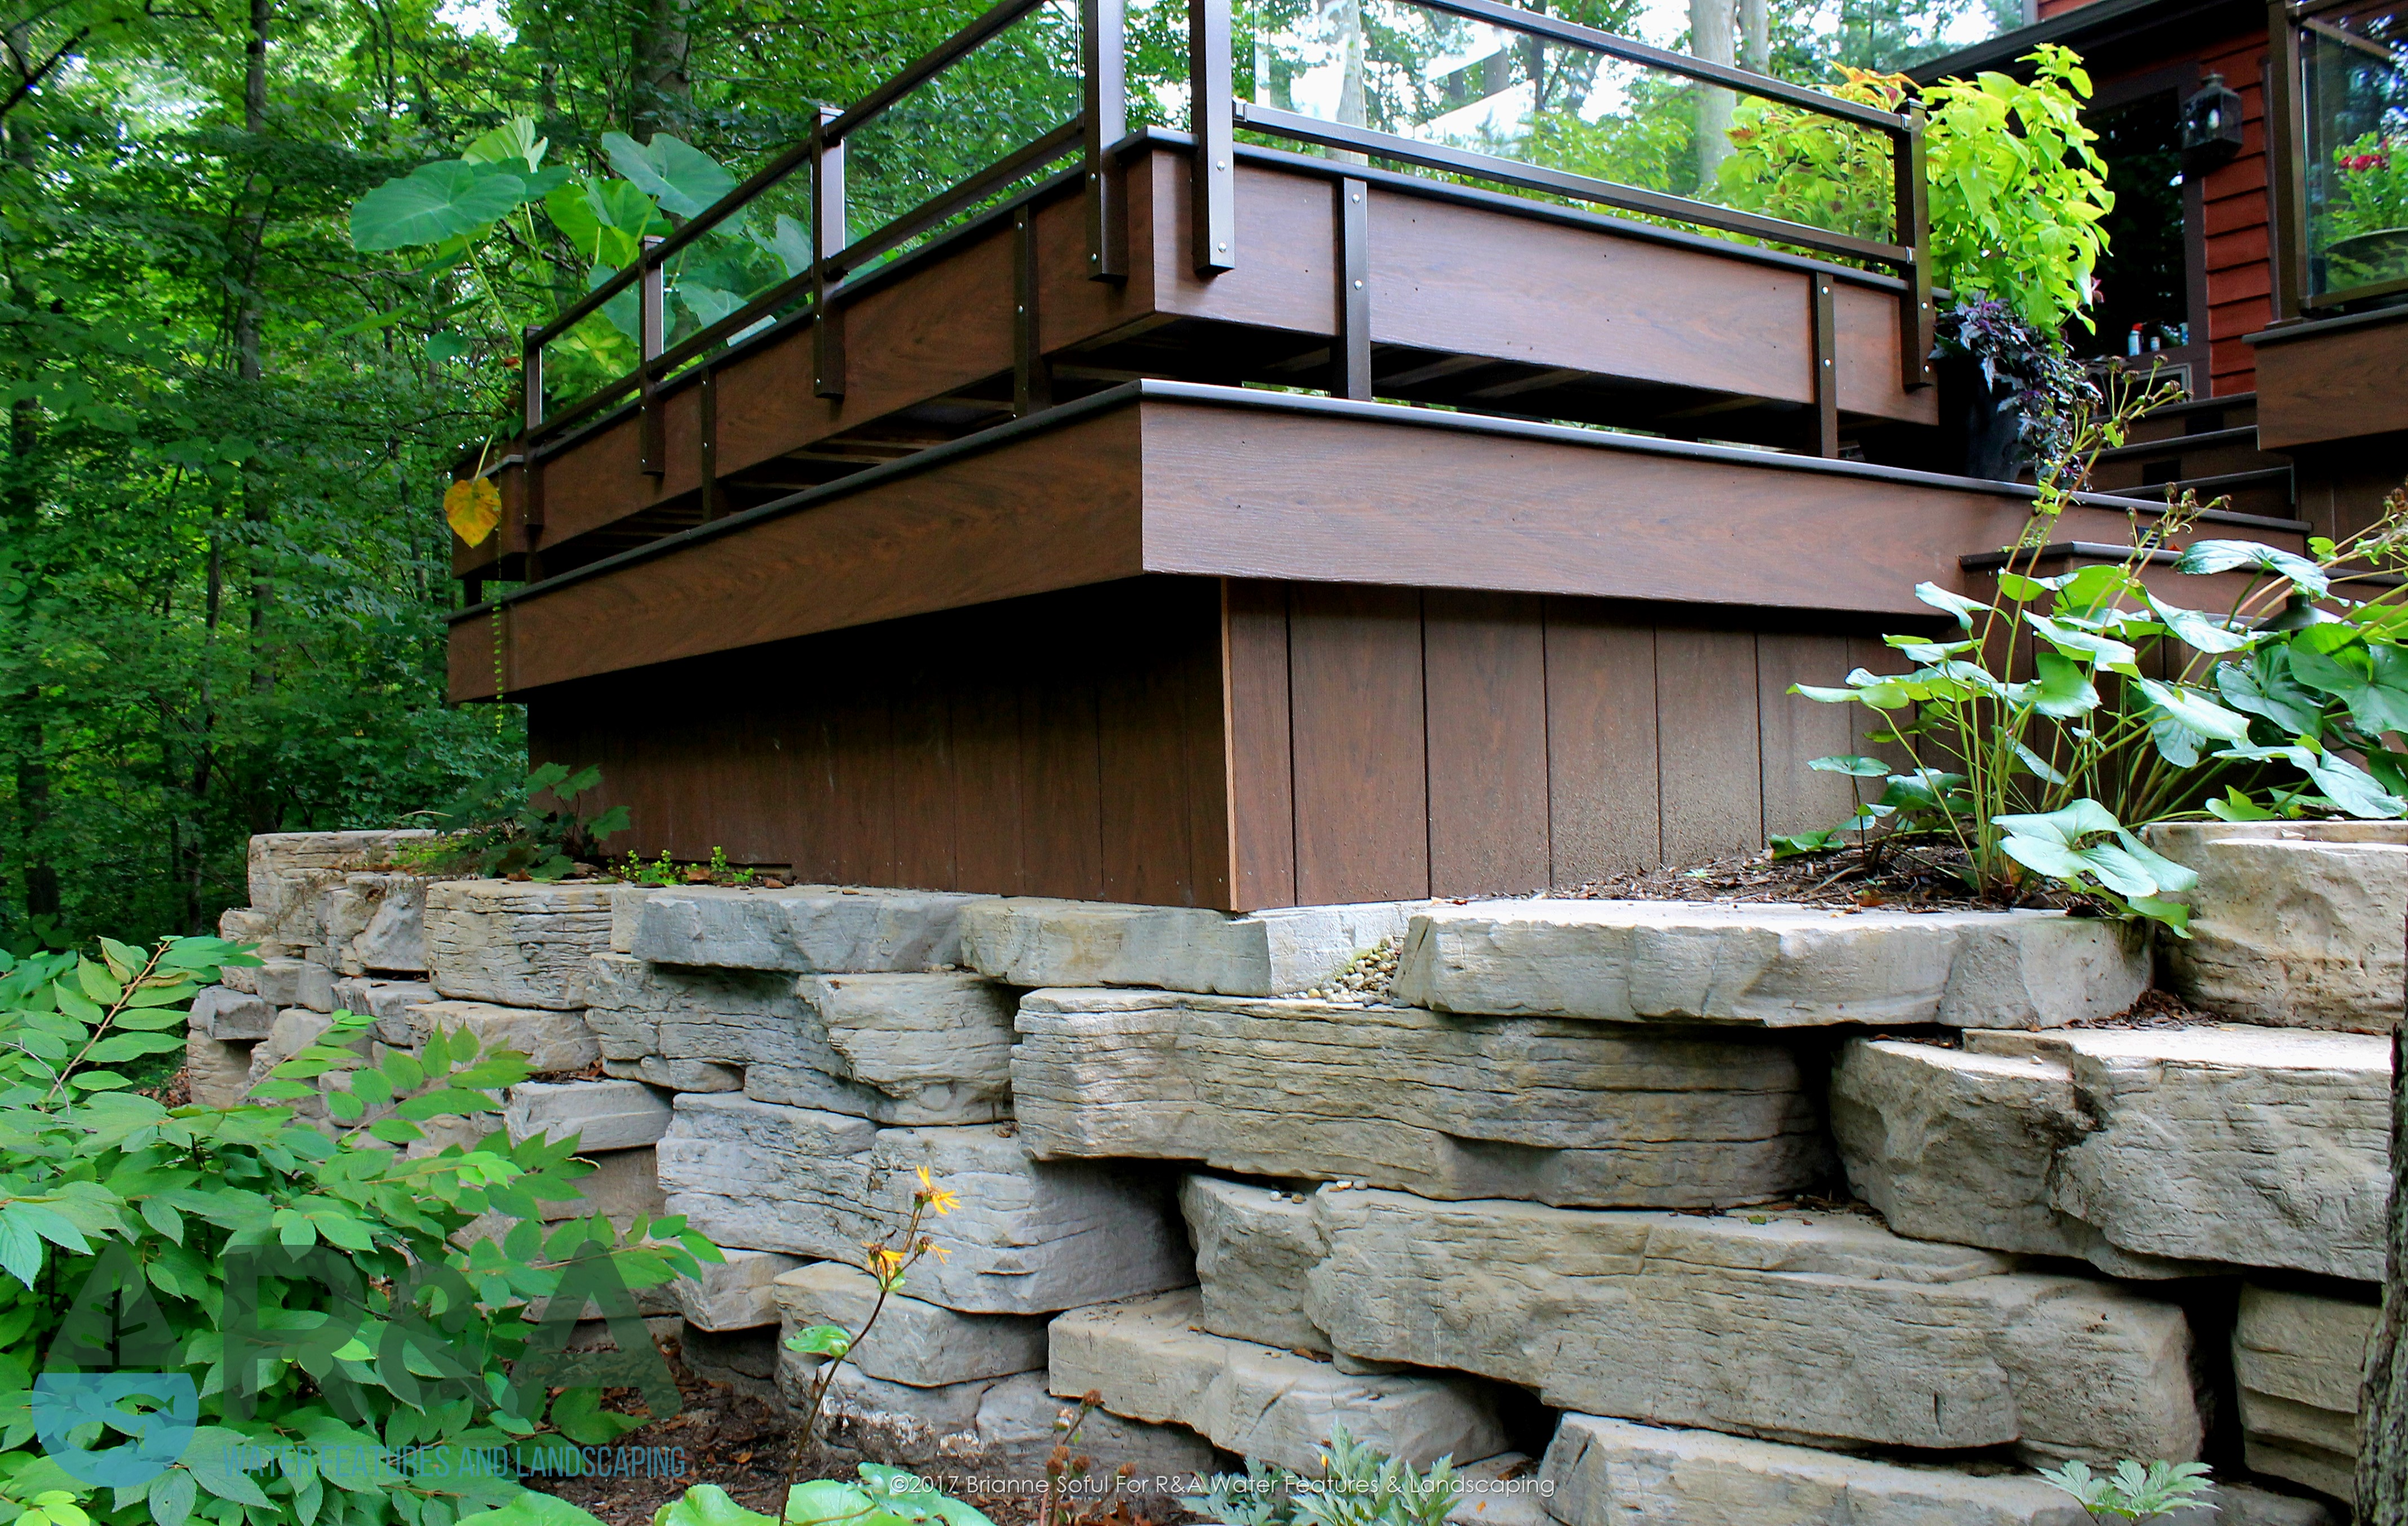 Eau Claire Landscaping Retaining Wall Steps Deck (10)